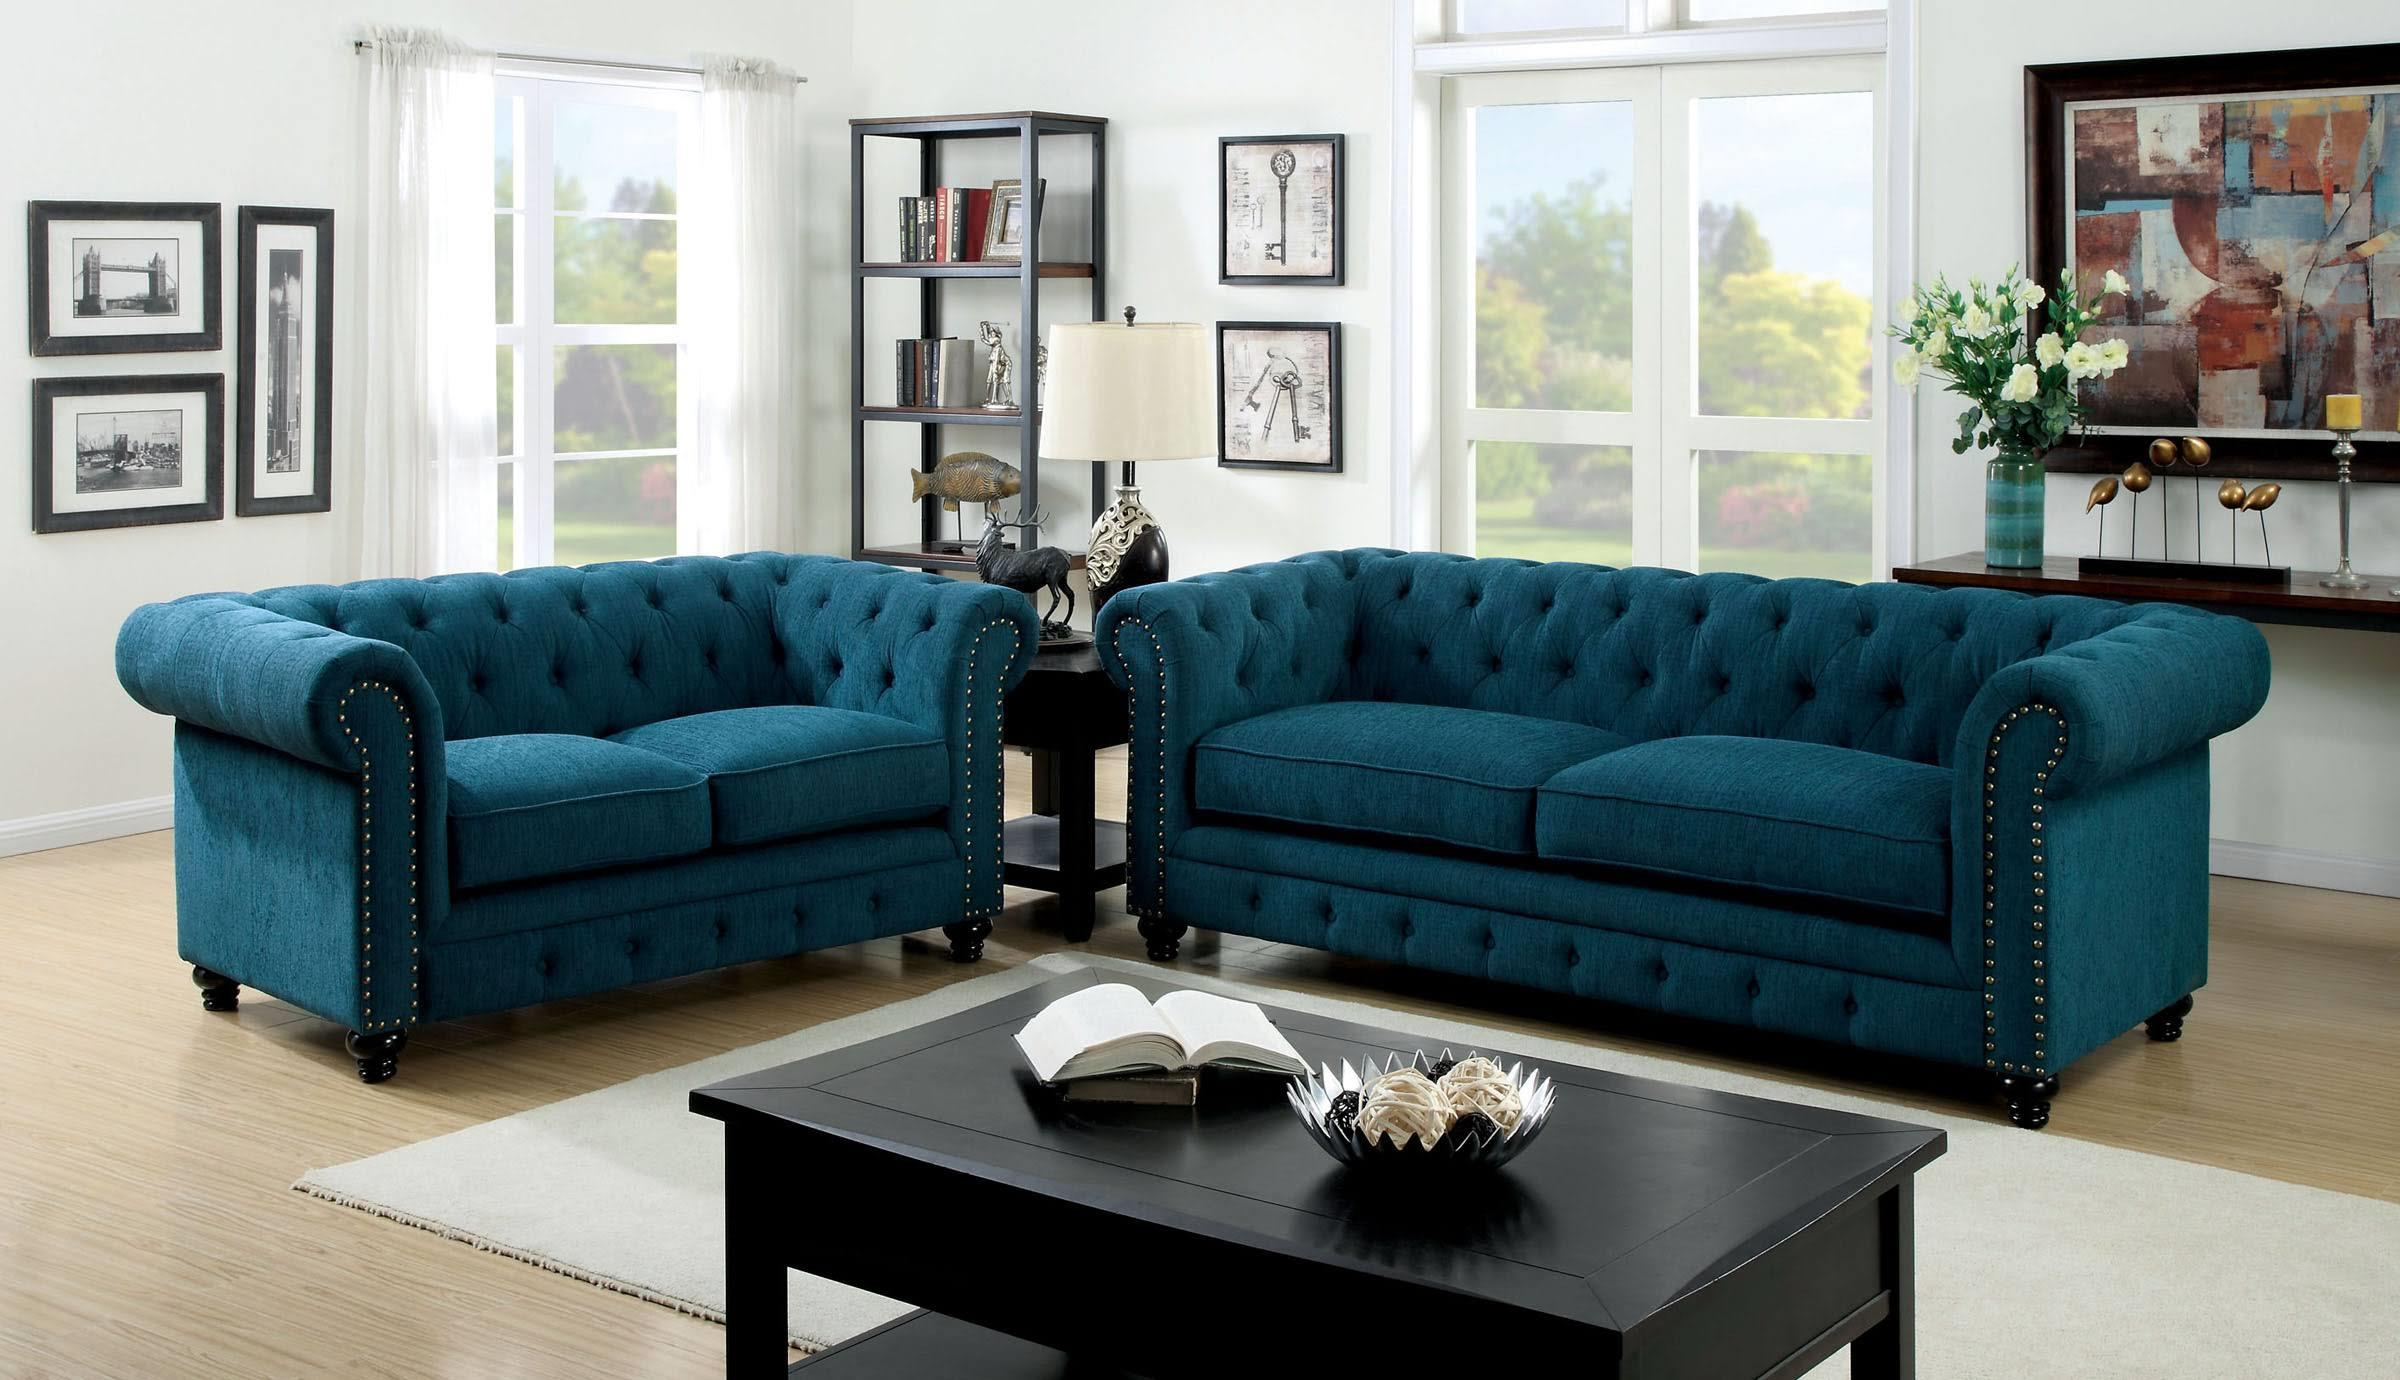 Furniture of America / Import Direct Stanford Sofa & Love Seat - Item Number: CM6269TL-SF+CM6269TL-LV